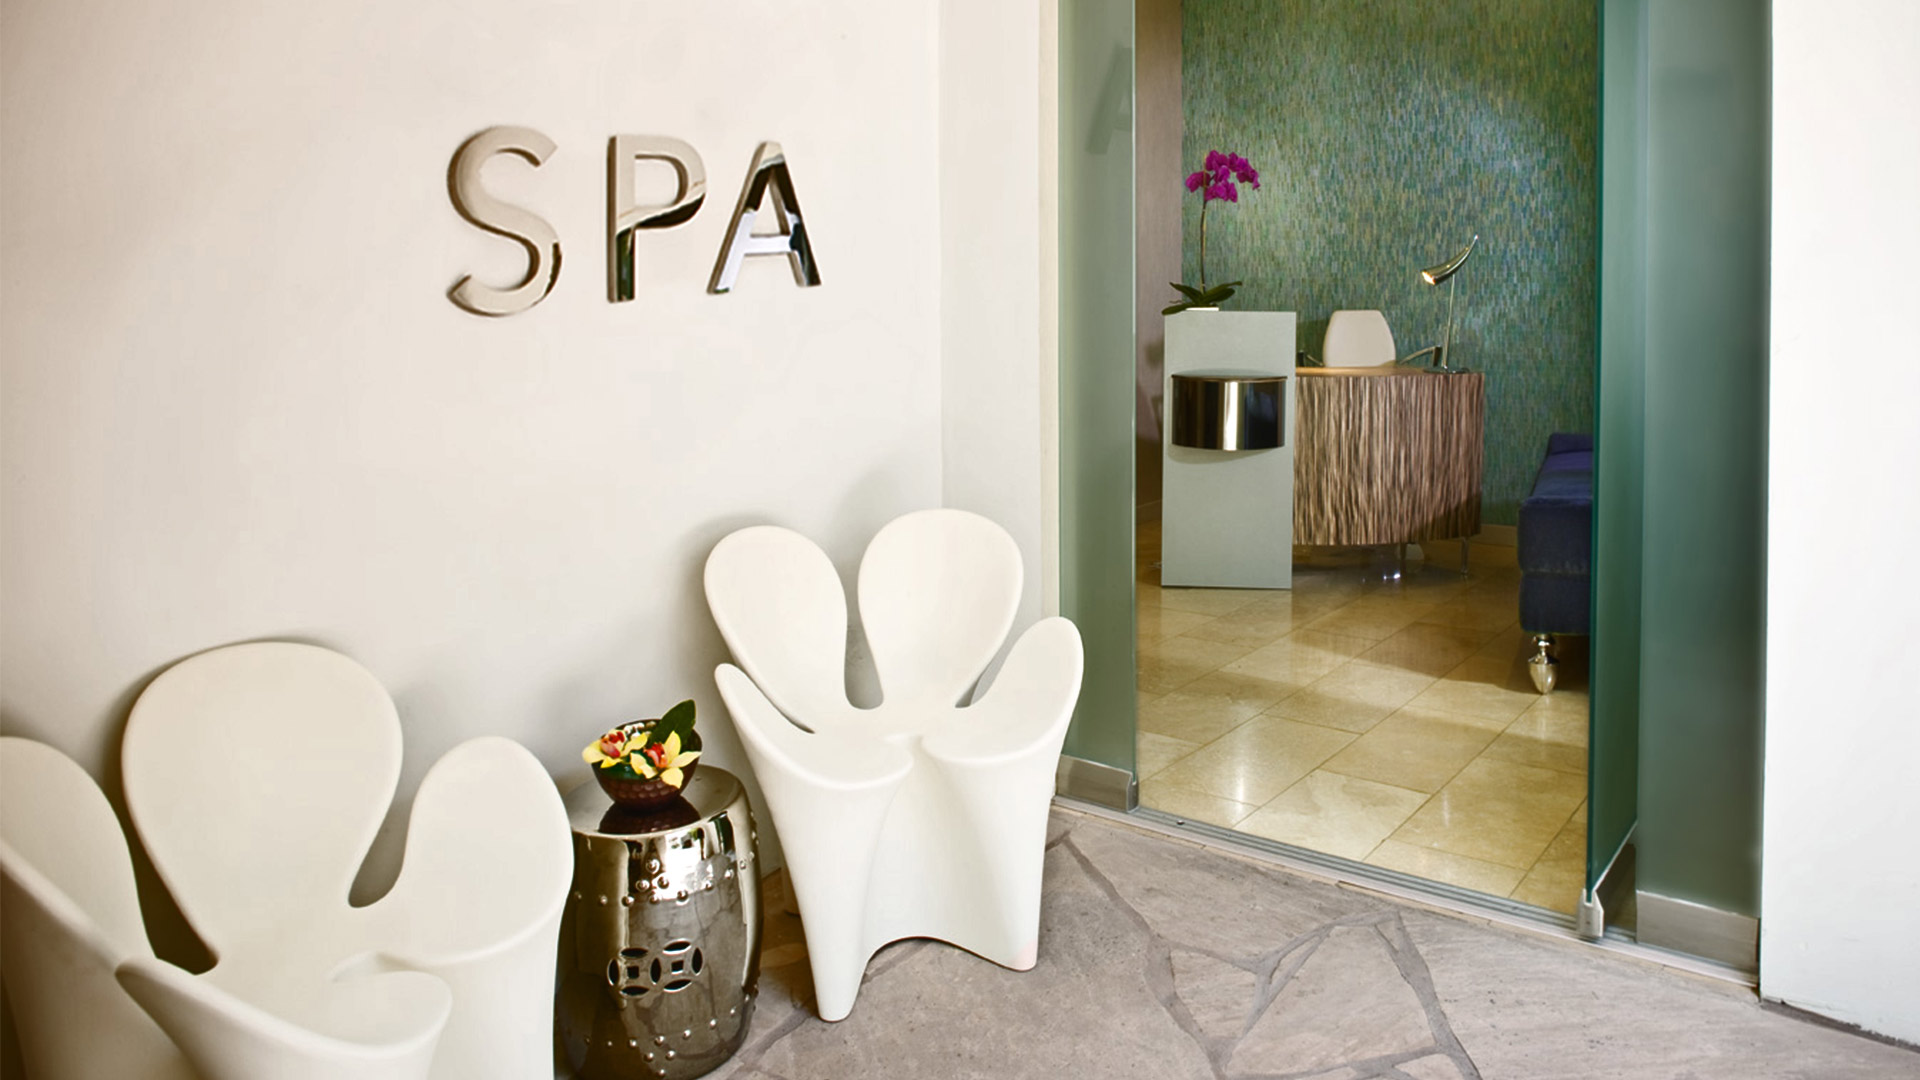 It's Spa time at San Marquis Hotel